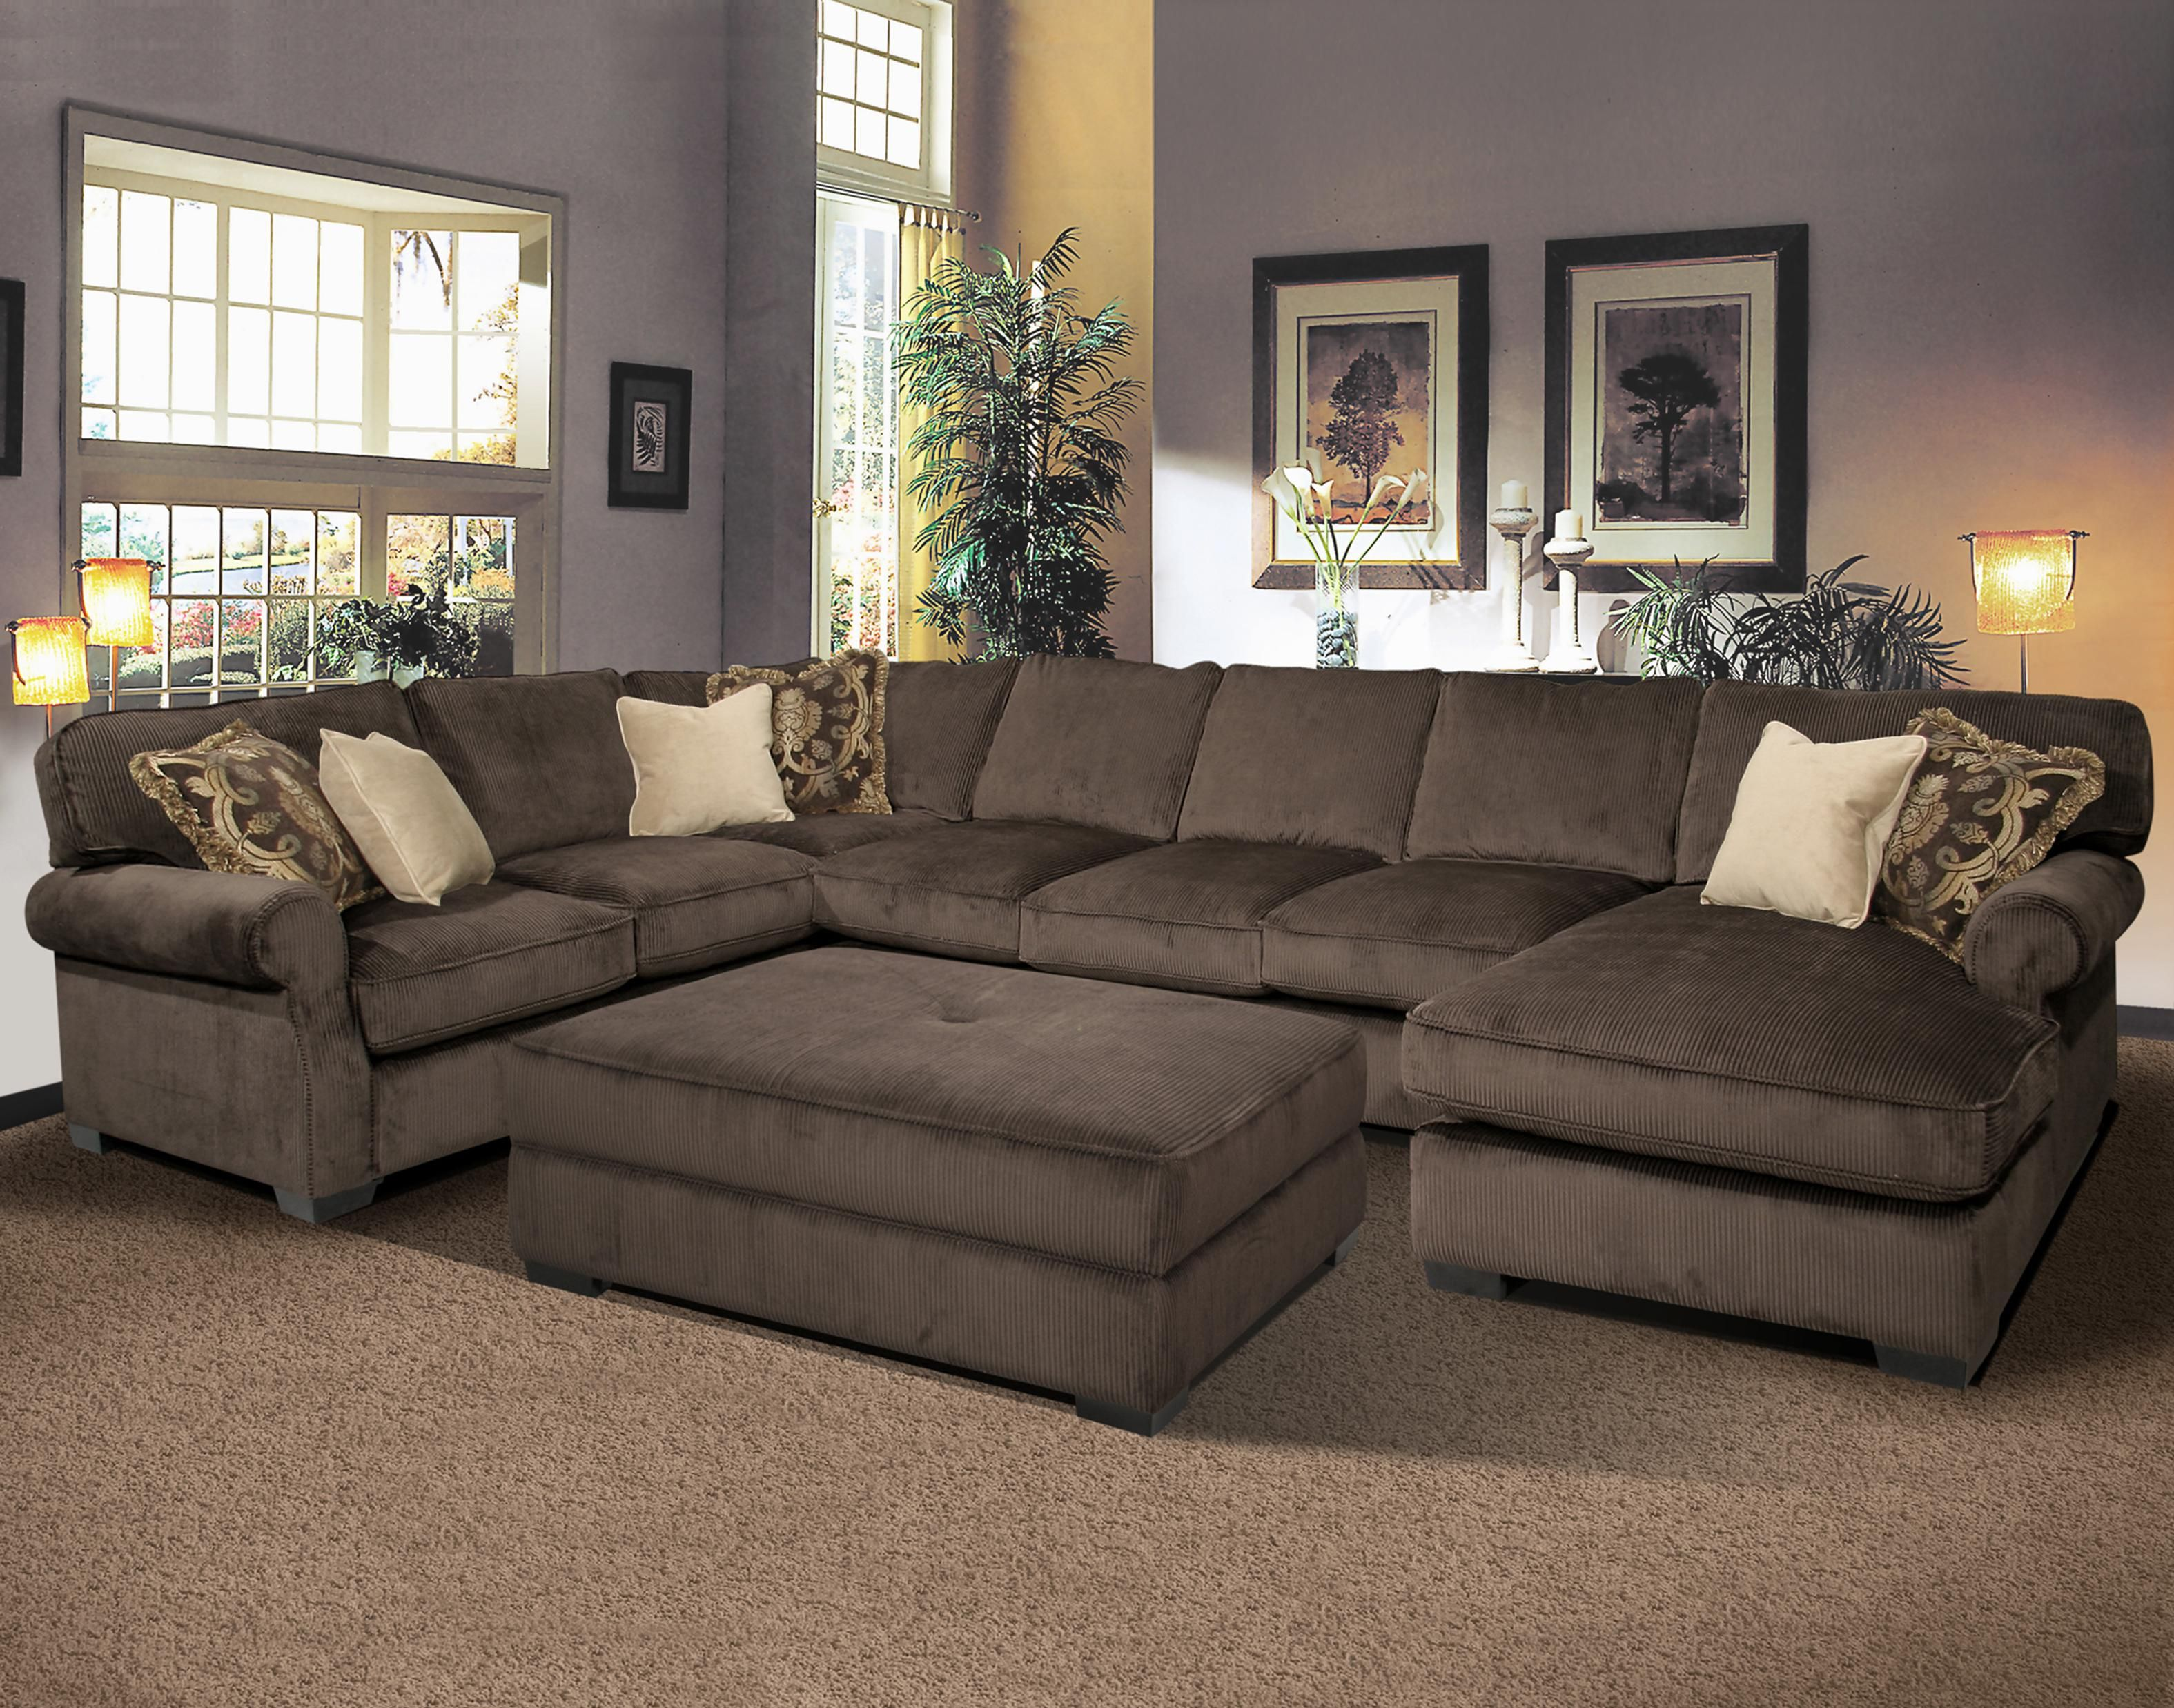 Charmant BIG AND COMFY Grand Island Large, 7 Seat Sectional Sofa With Right Side  Chaise By